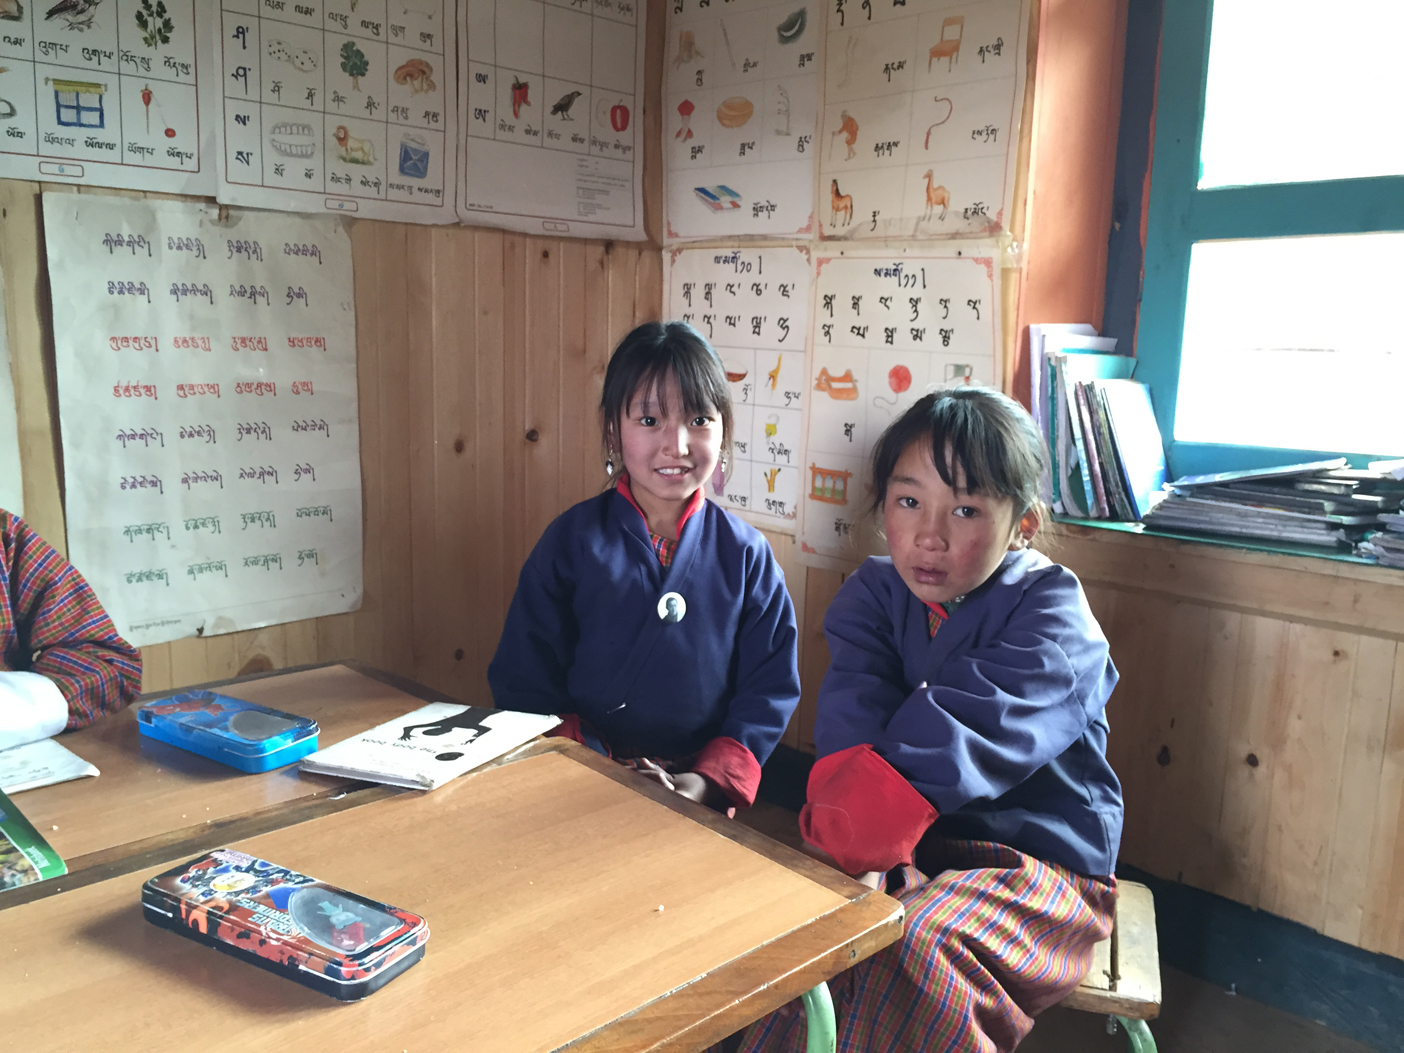 Two girls in the middle aged classroom, Bhutanese on the wall behind them, English on the opposite wall